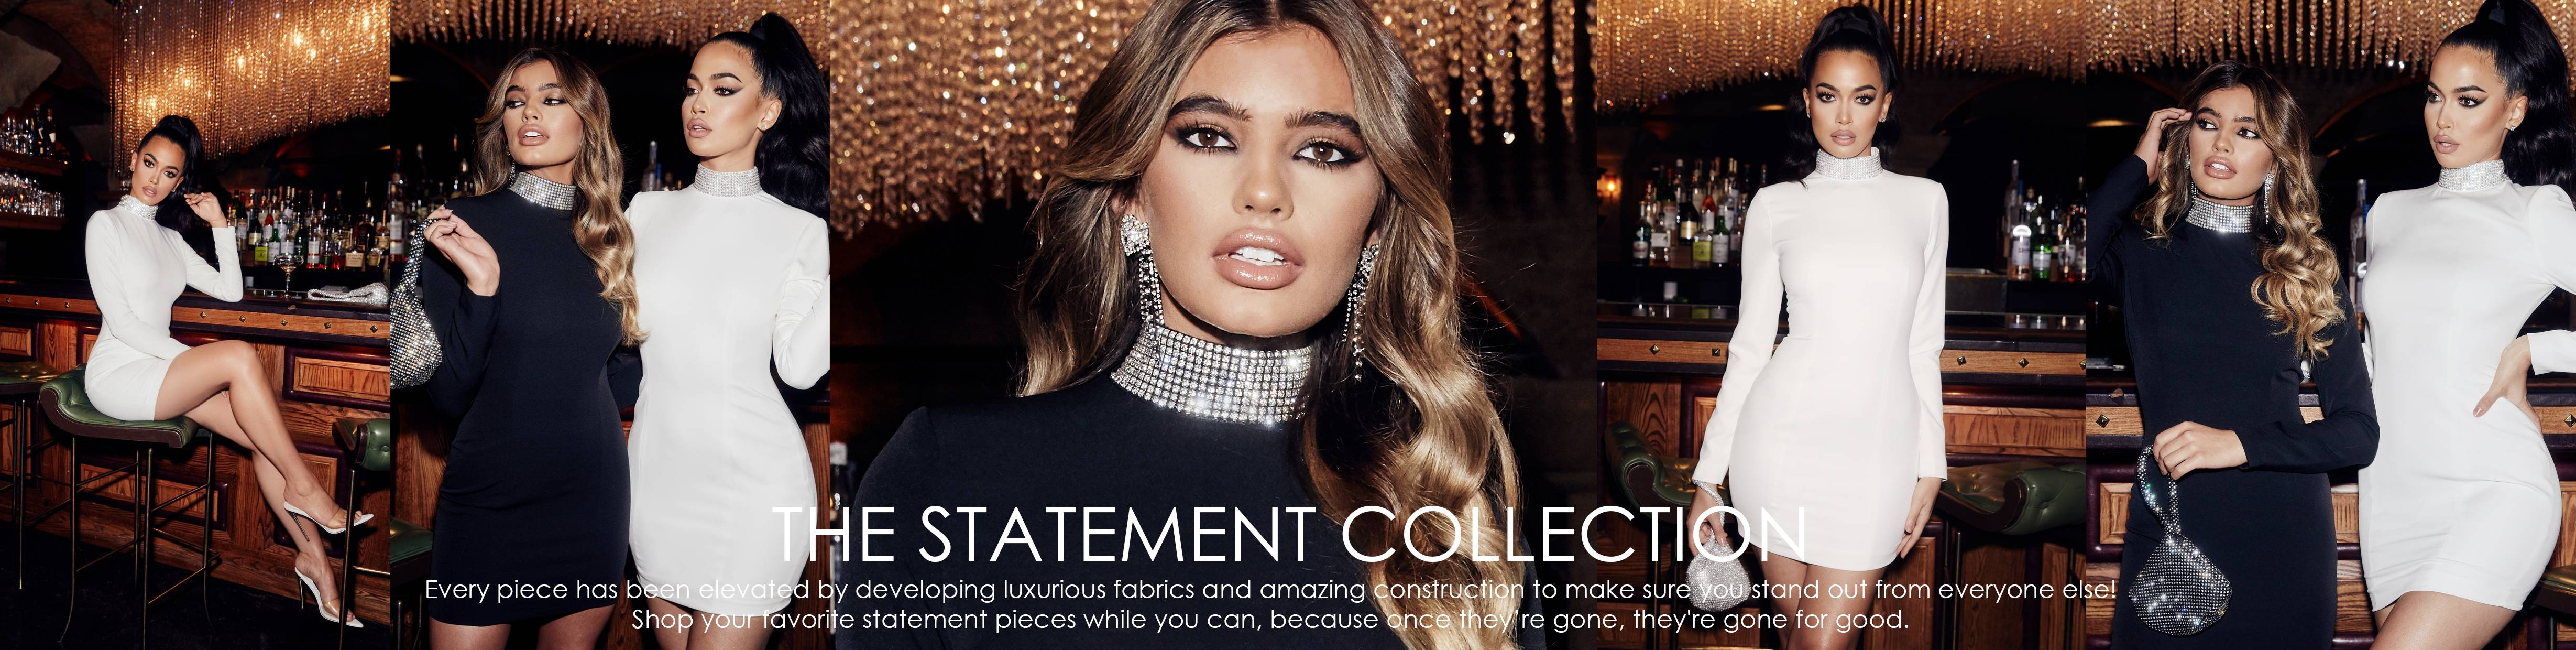 The Statement Collection